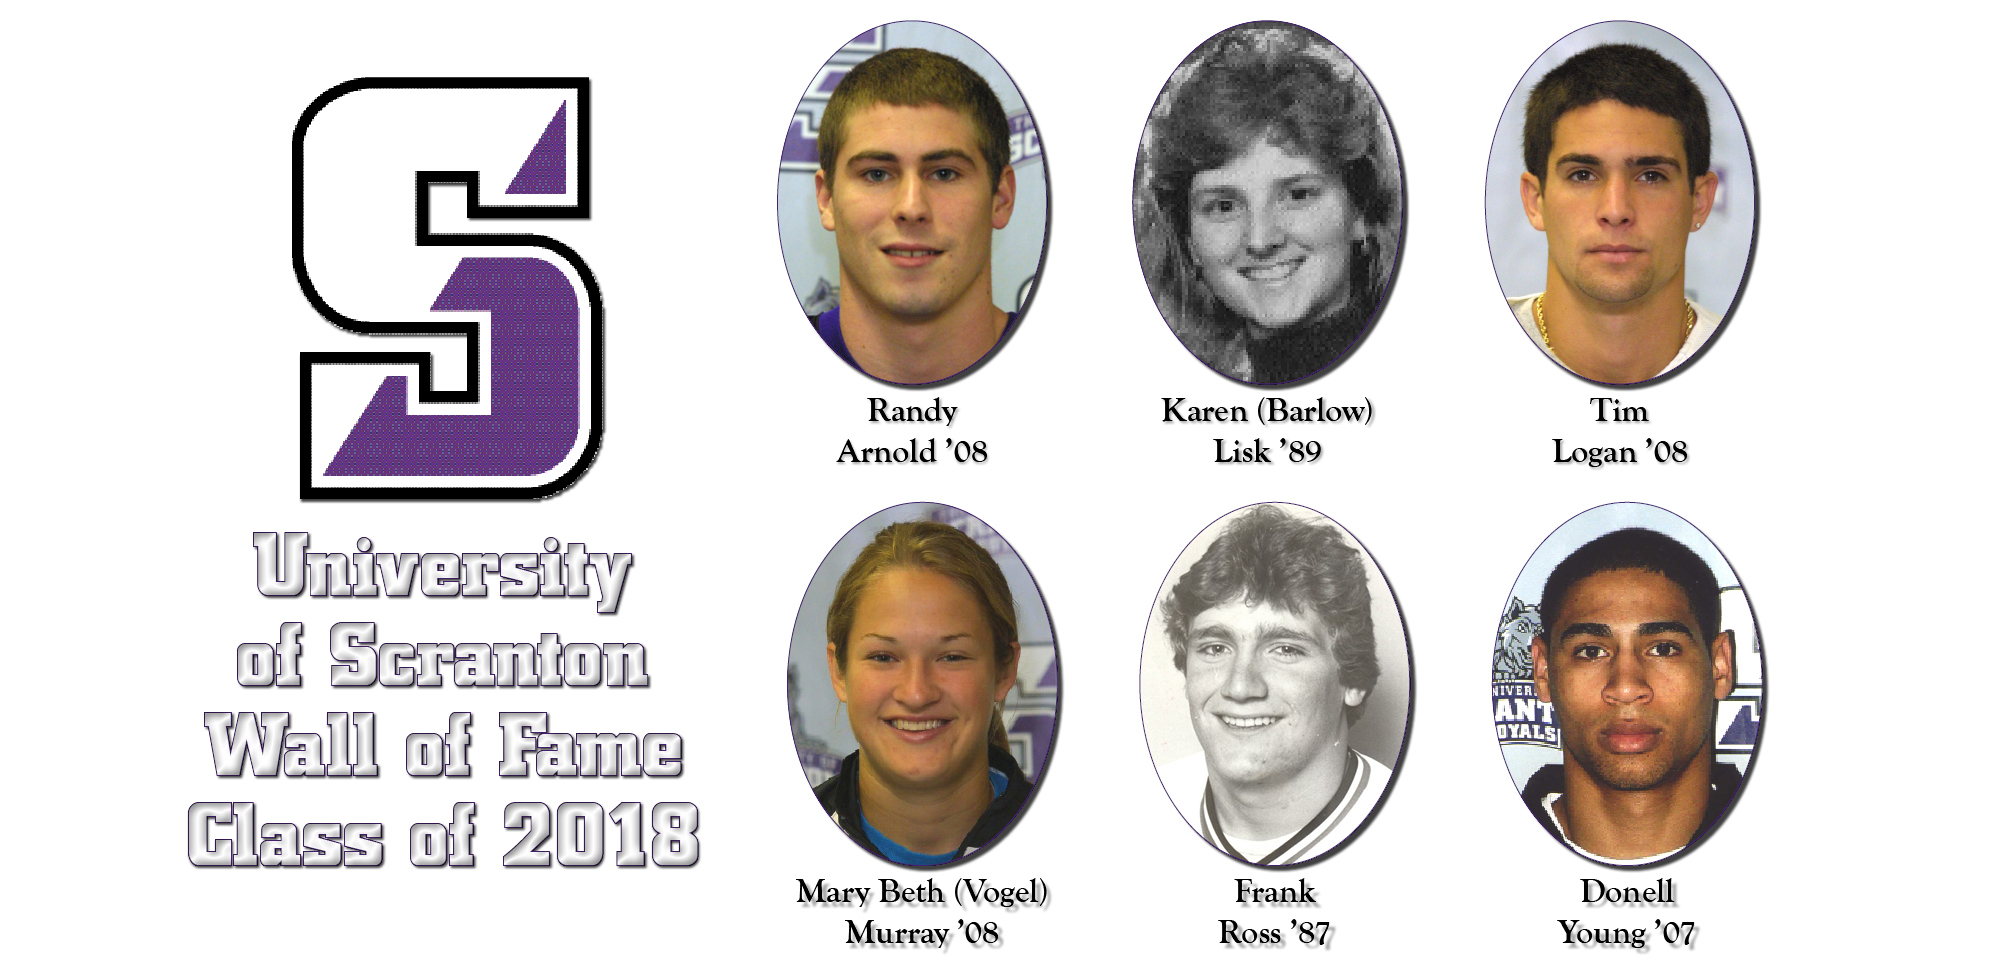 University of Scranton Announces Wall of Fame Class of 2018